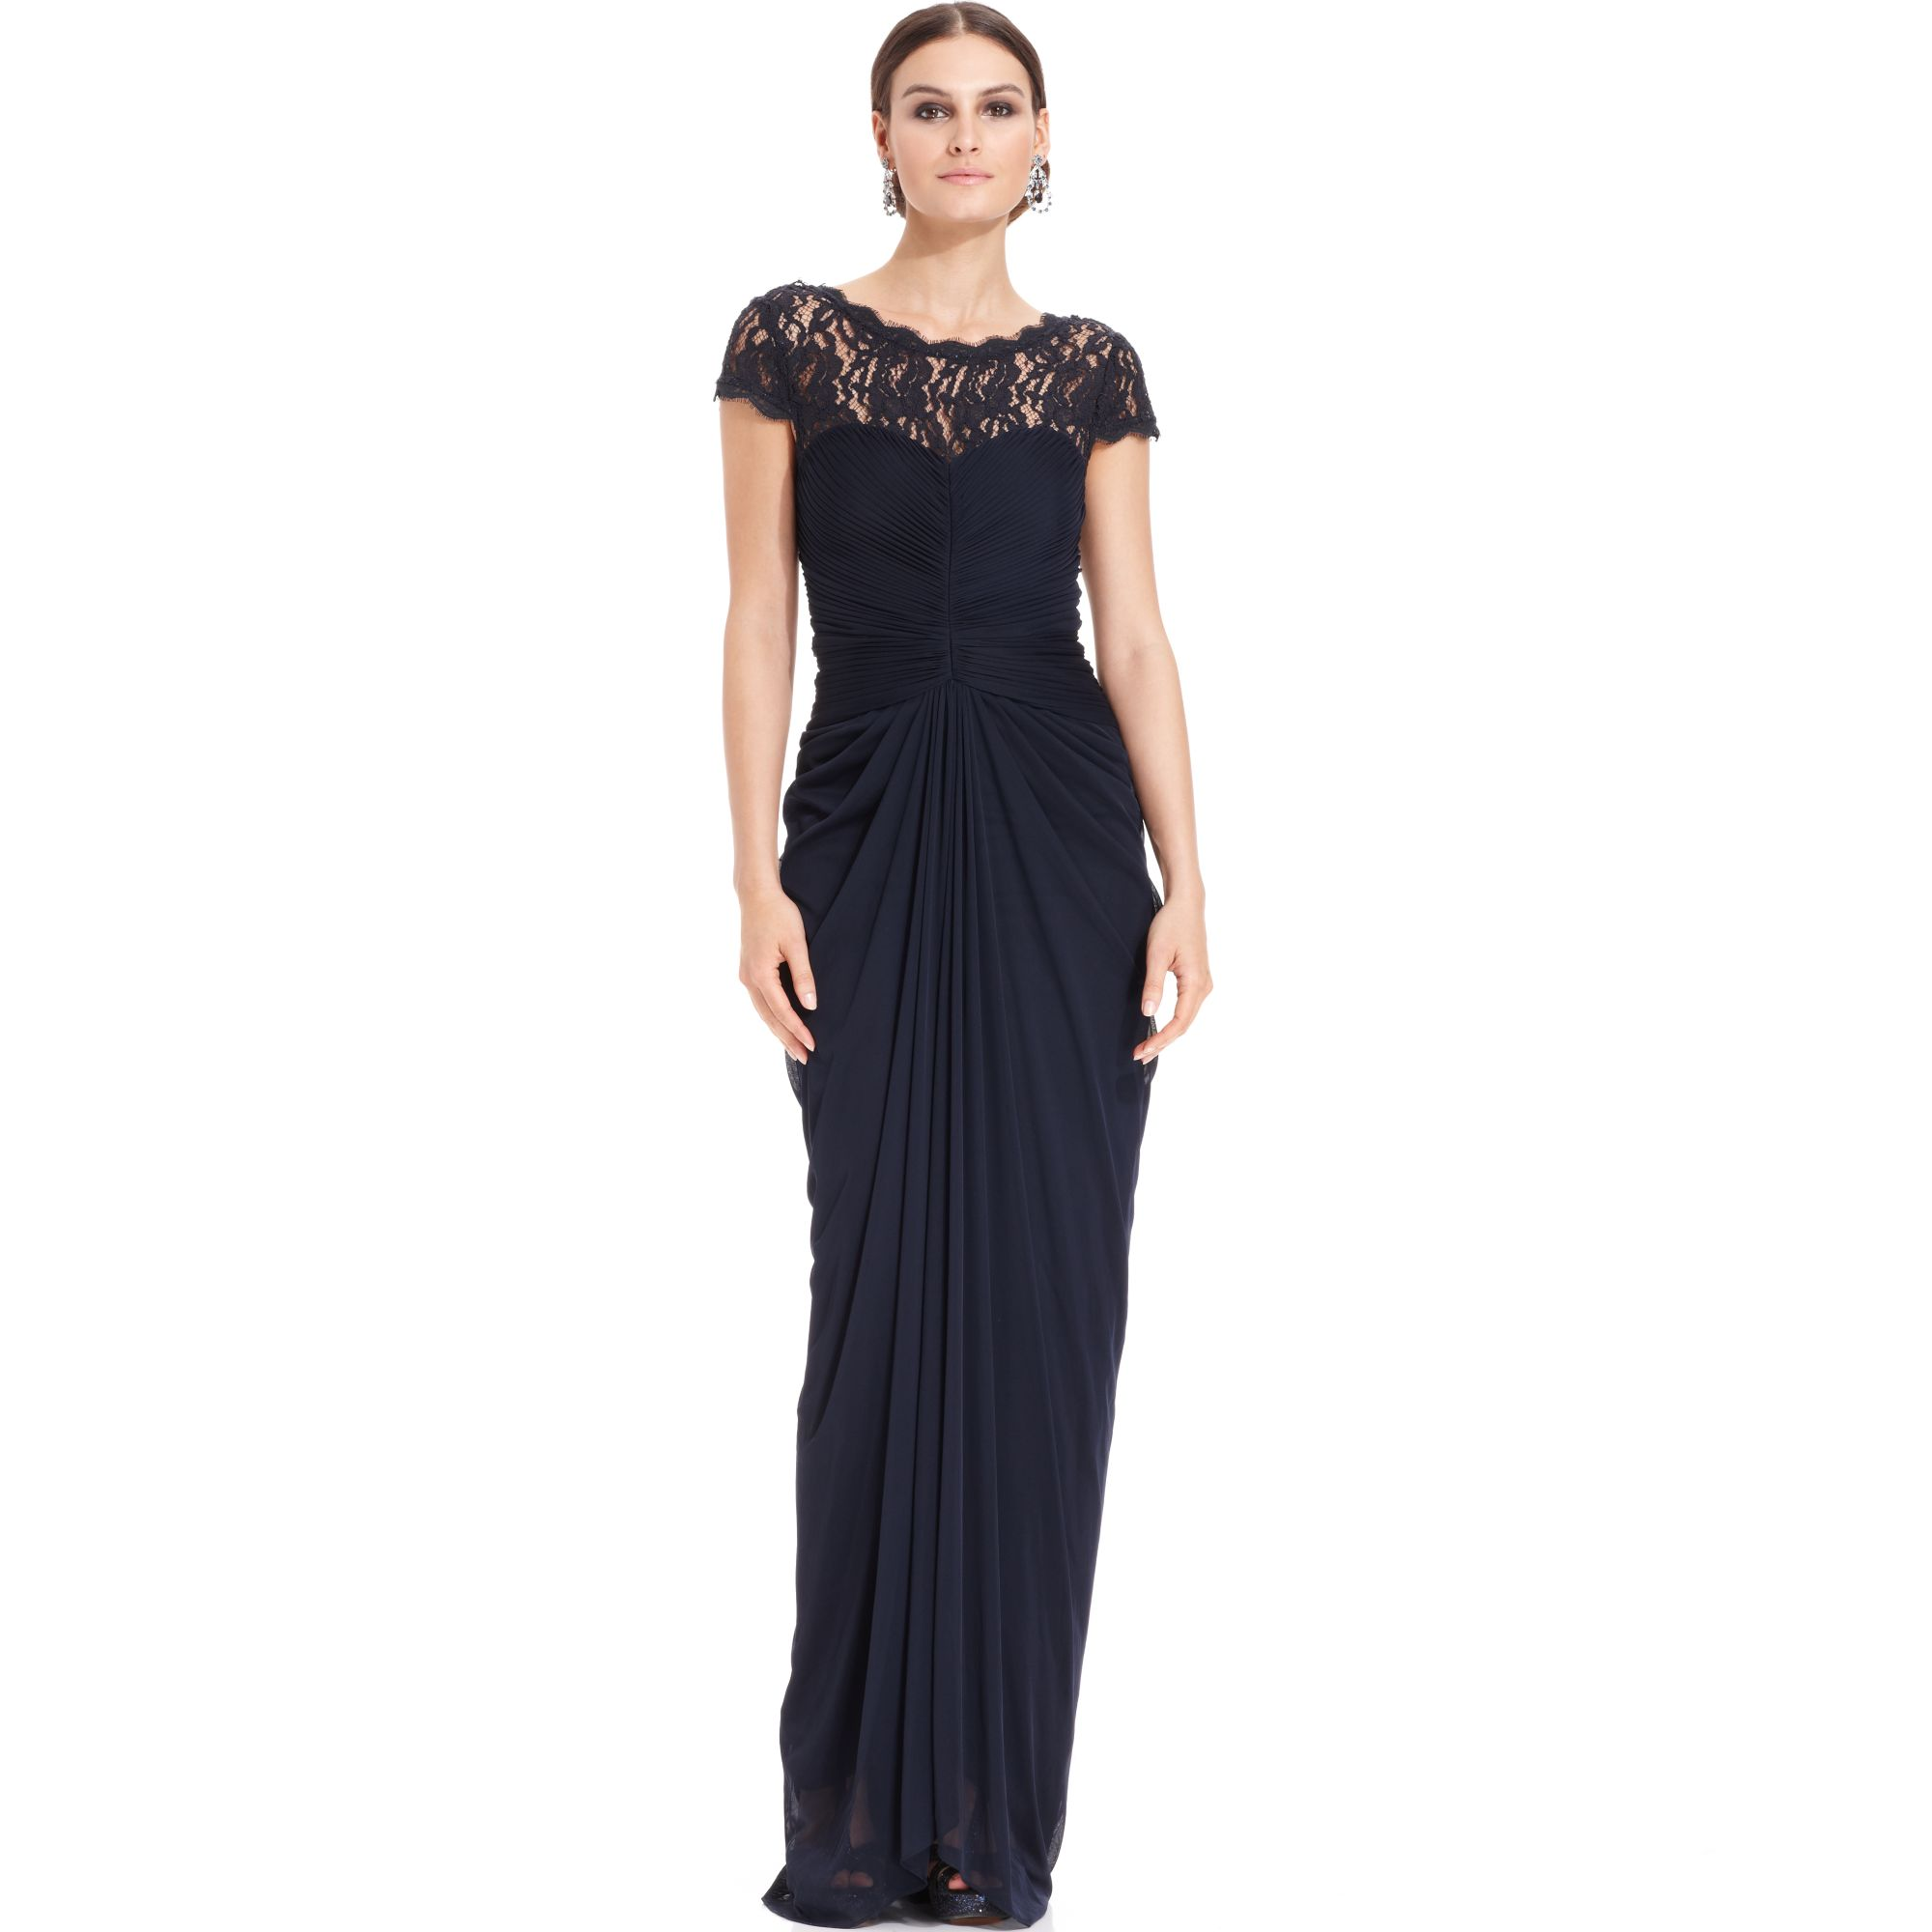 Adrianna Papell Evening Lace Dresses – Fashion dresses